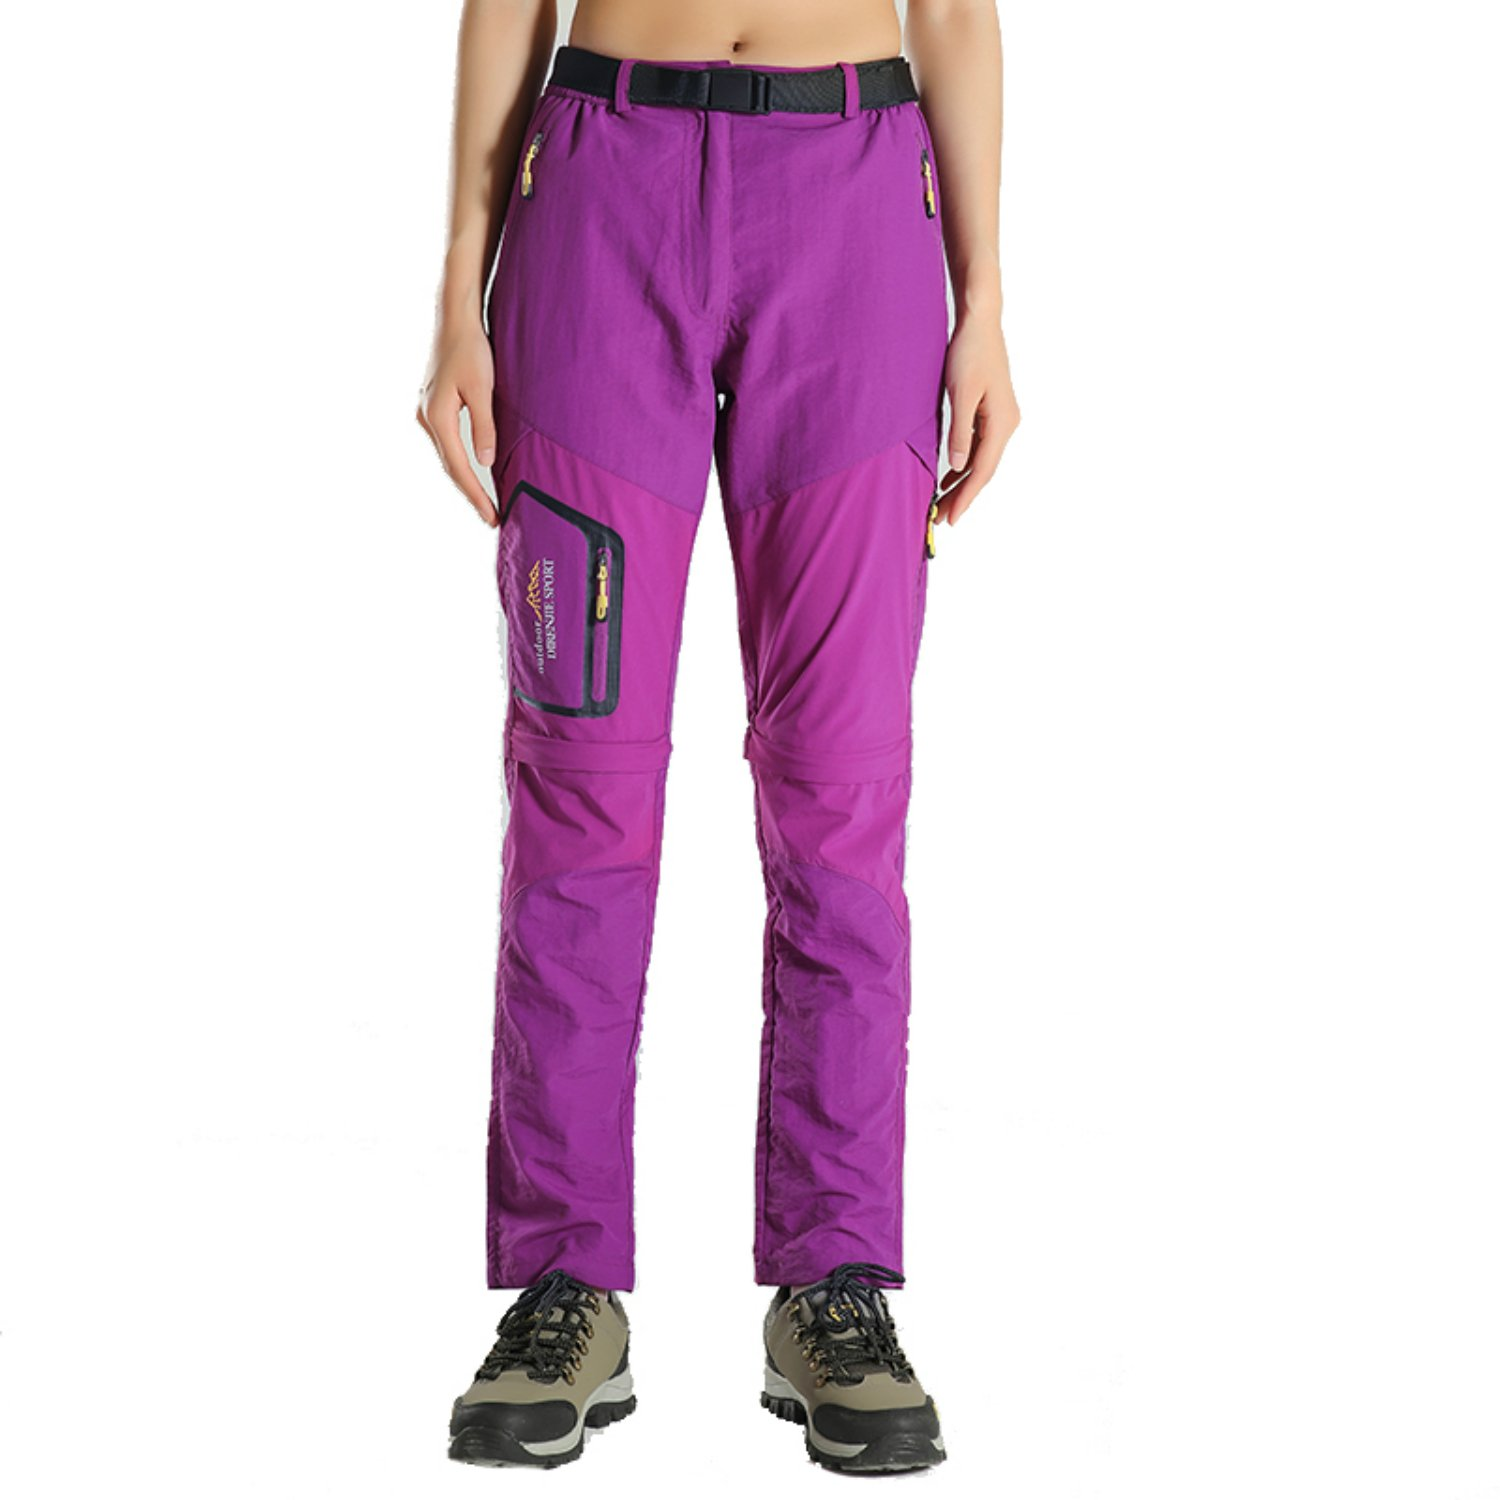 siwode Women's Outdoor Quick Dry Two-Section Lightweight Water-Resistant Hiking Pants